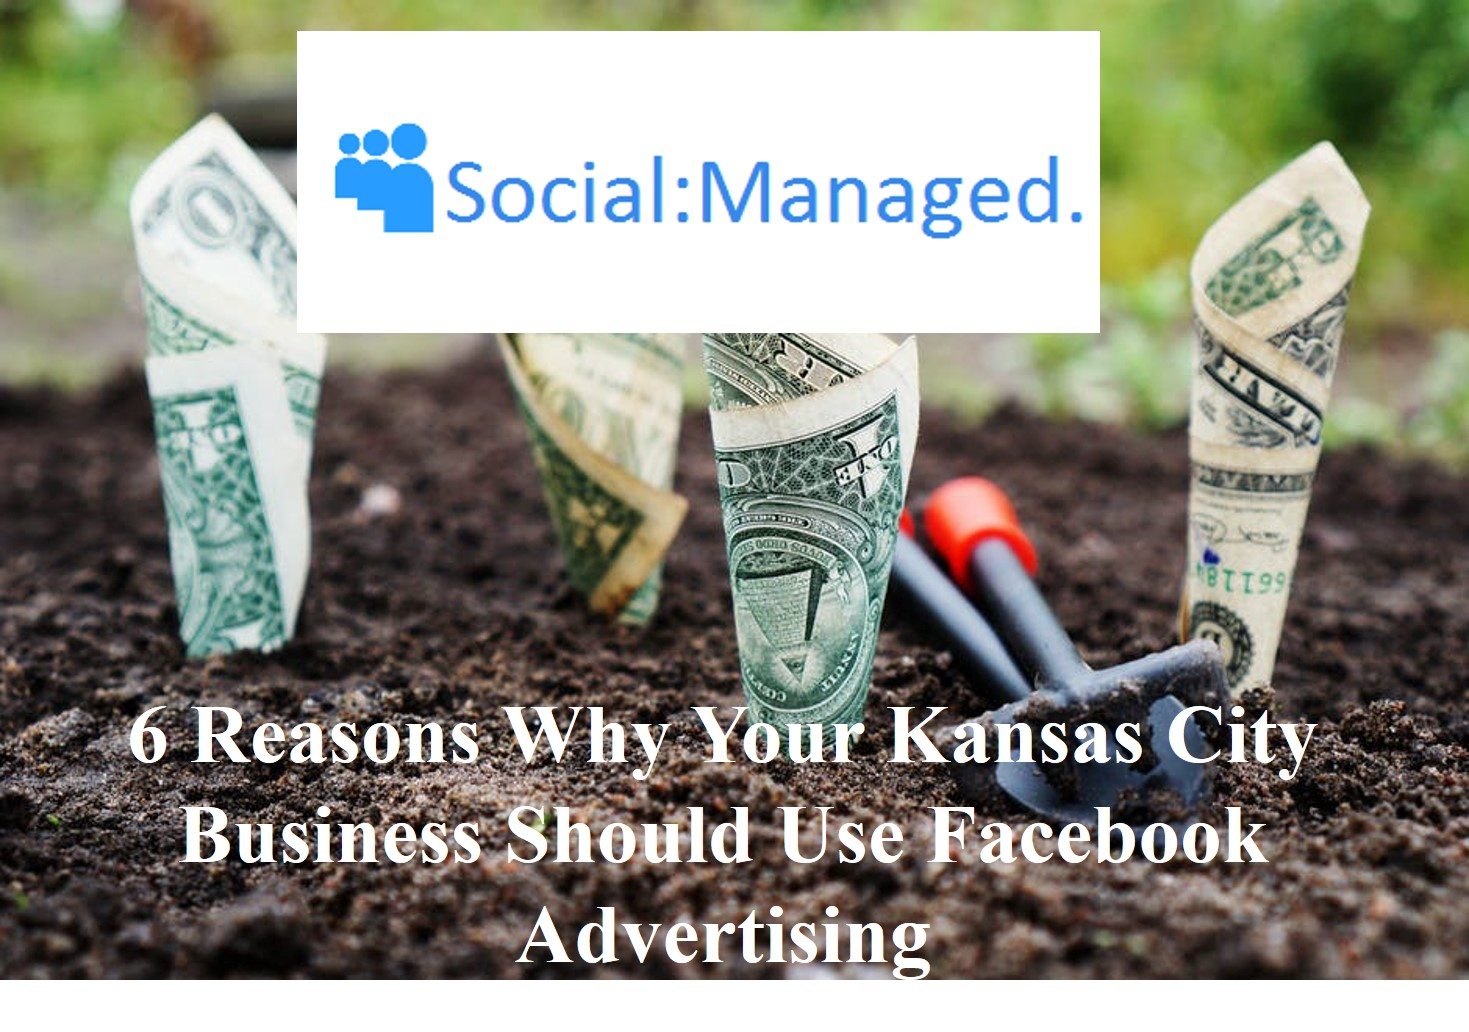 6 Reasons Why Your Kansas City Business Should Use Facebook Advertising